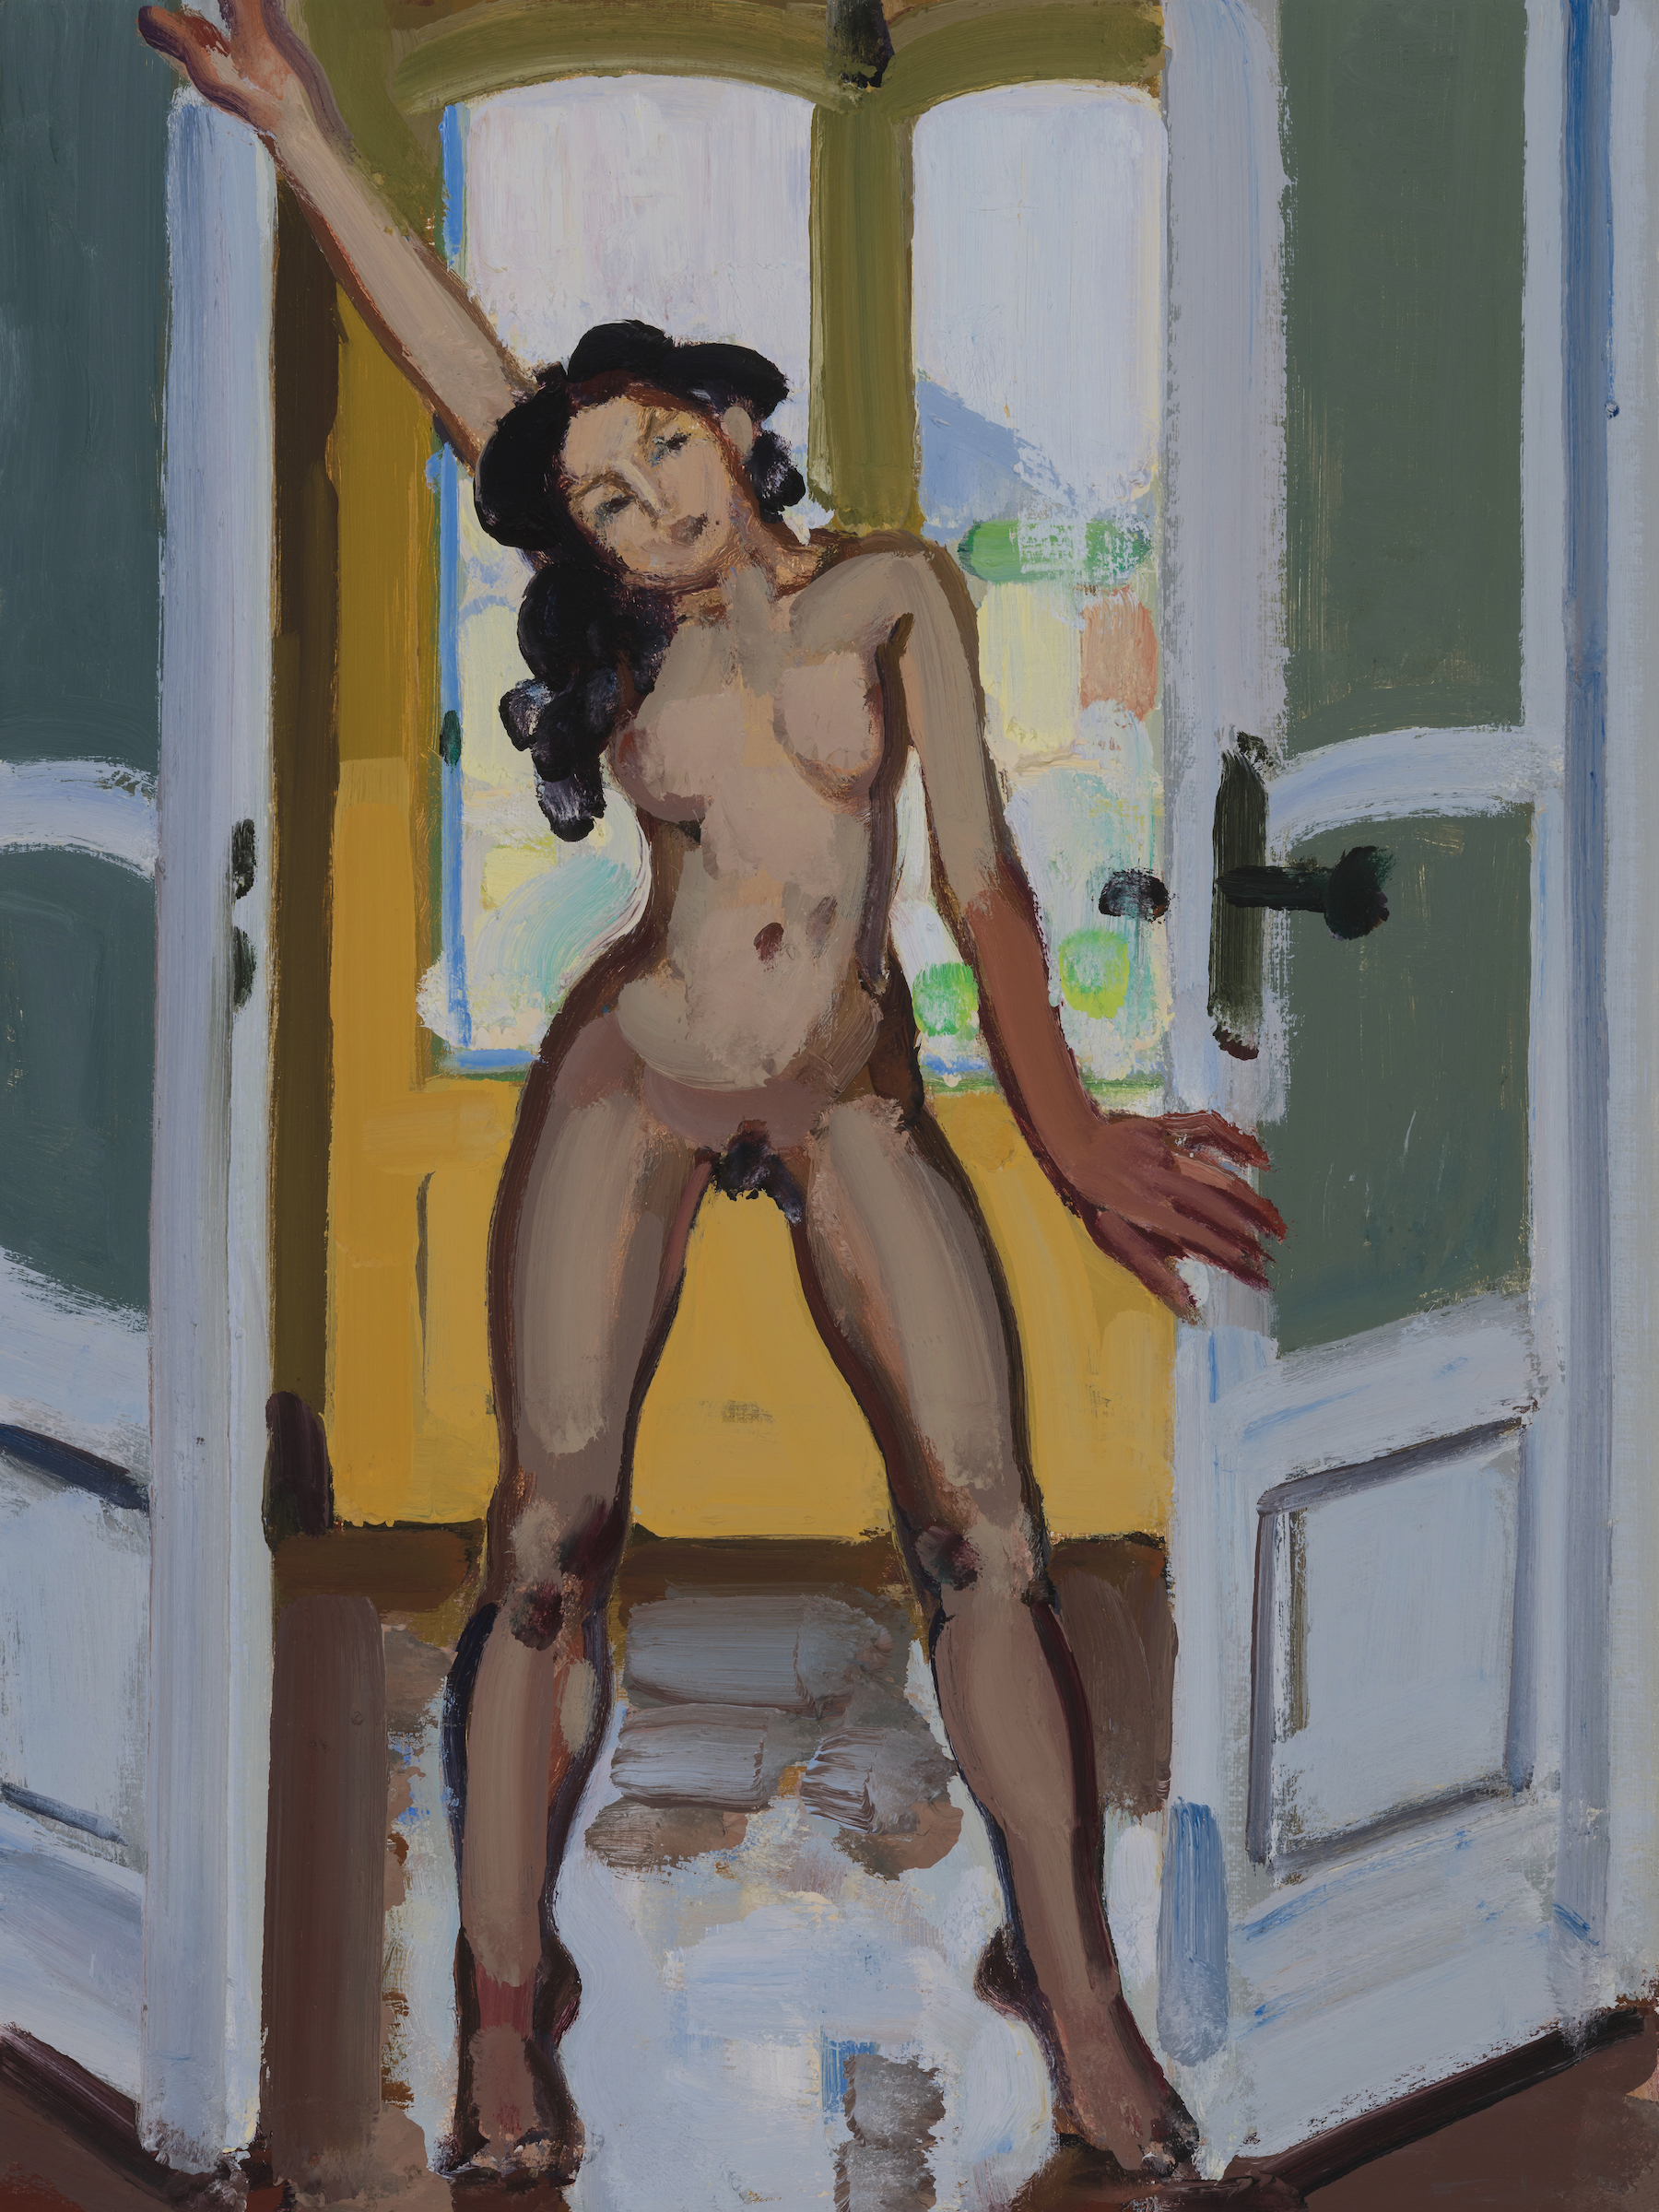 Nude standing with Legs Apart in French Door